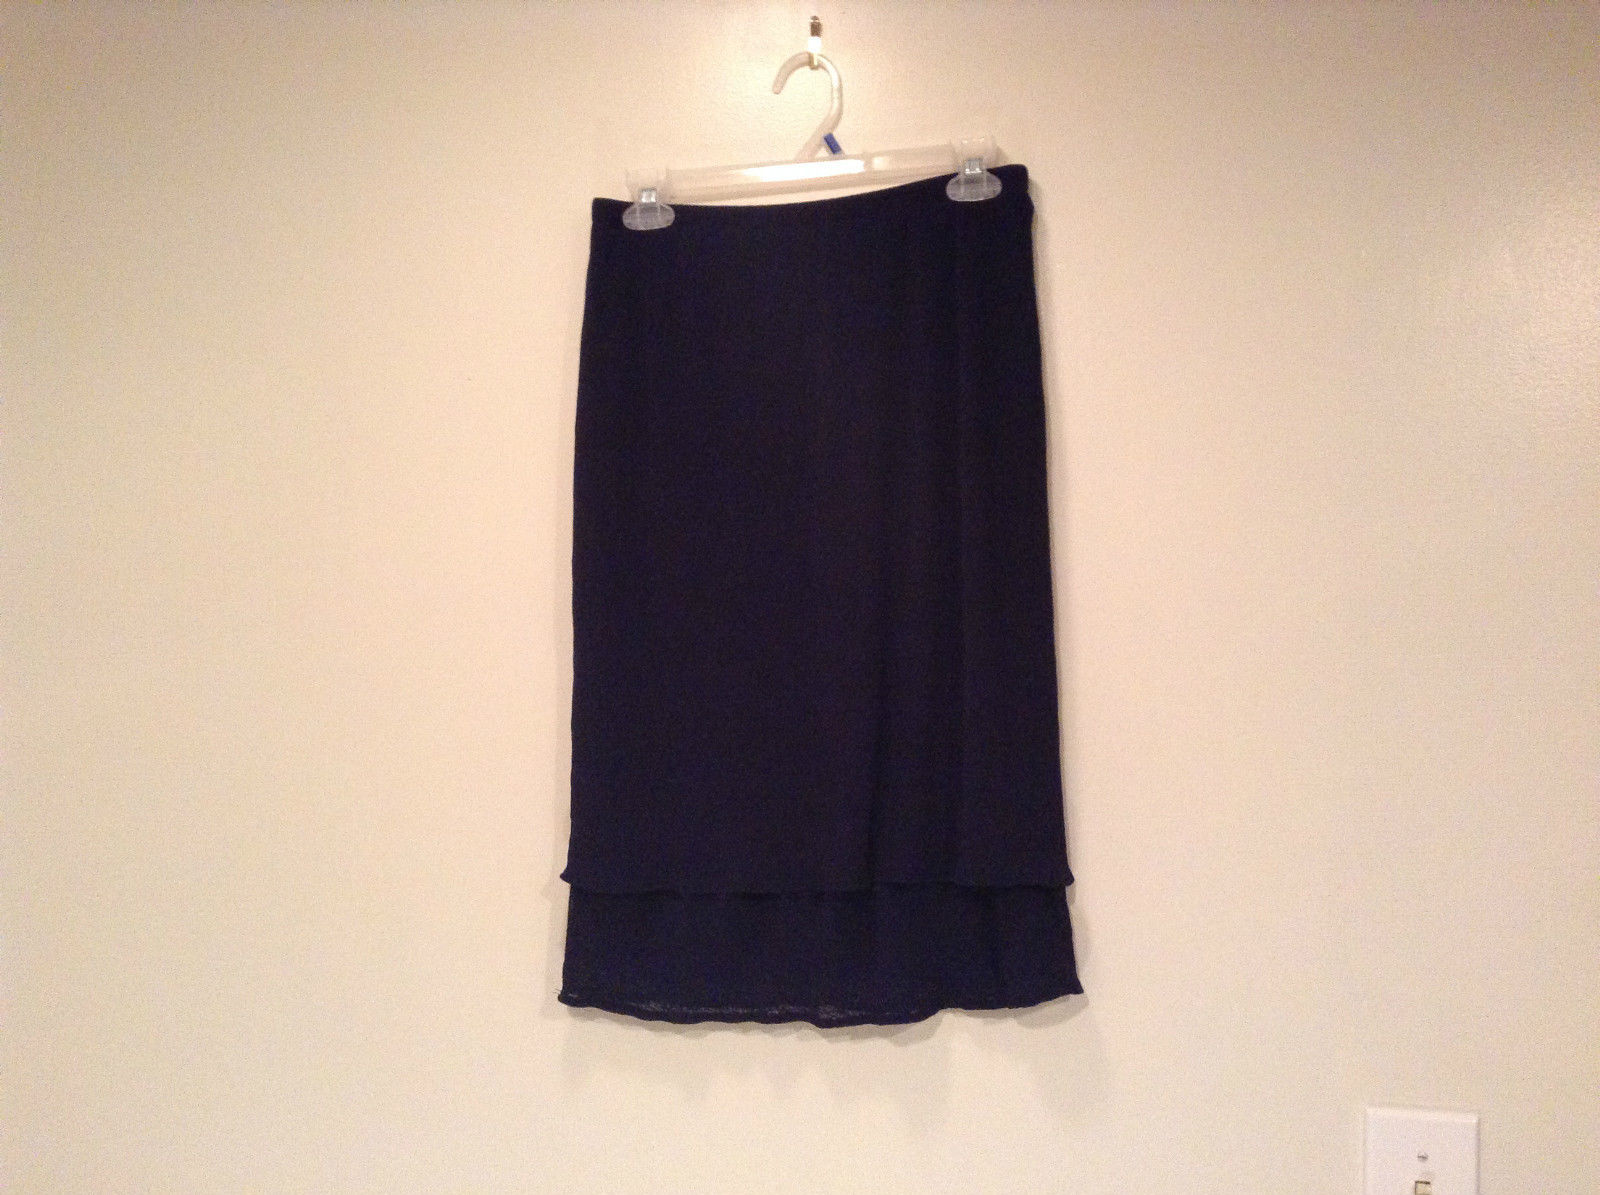 Dark Blue Stretch Fabric Kathy Ireland 100 Percent Polyester Size Medium Skirt